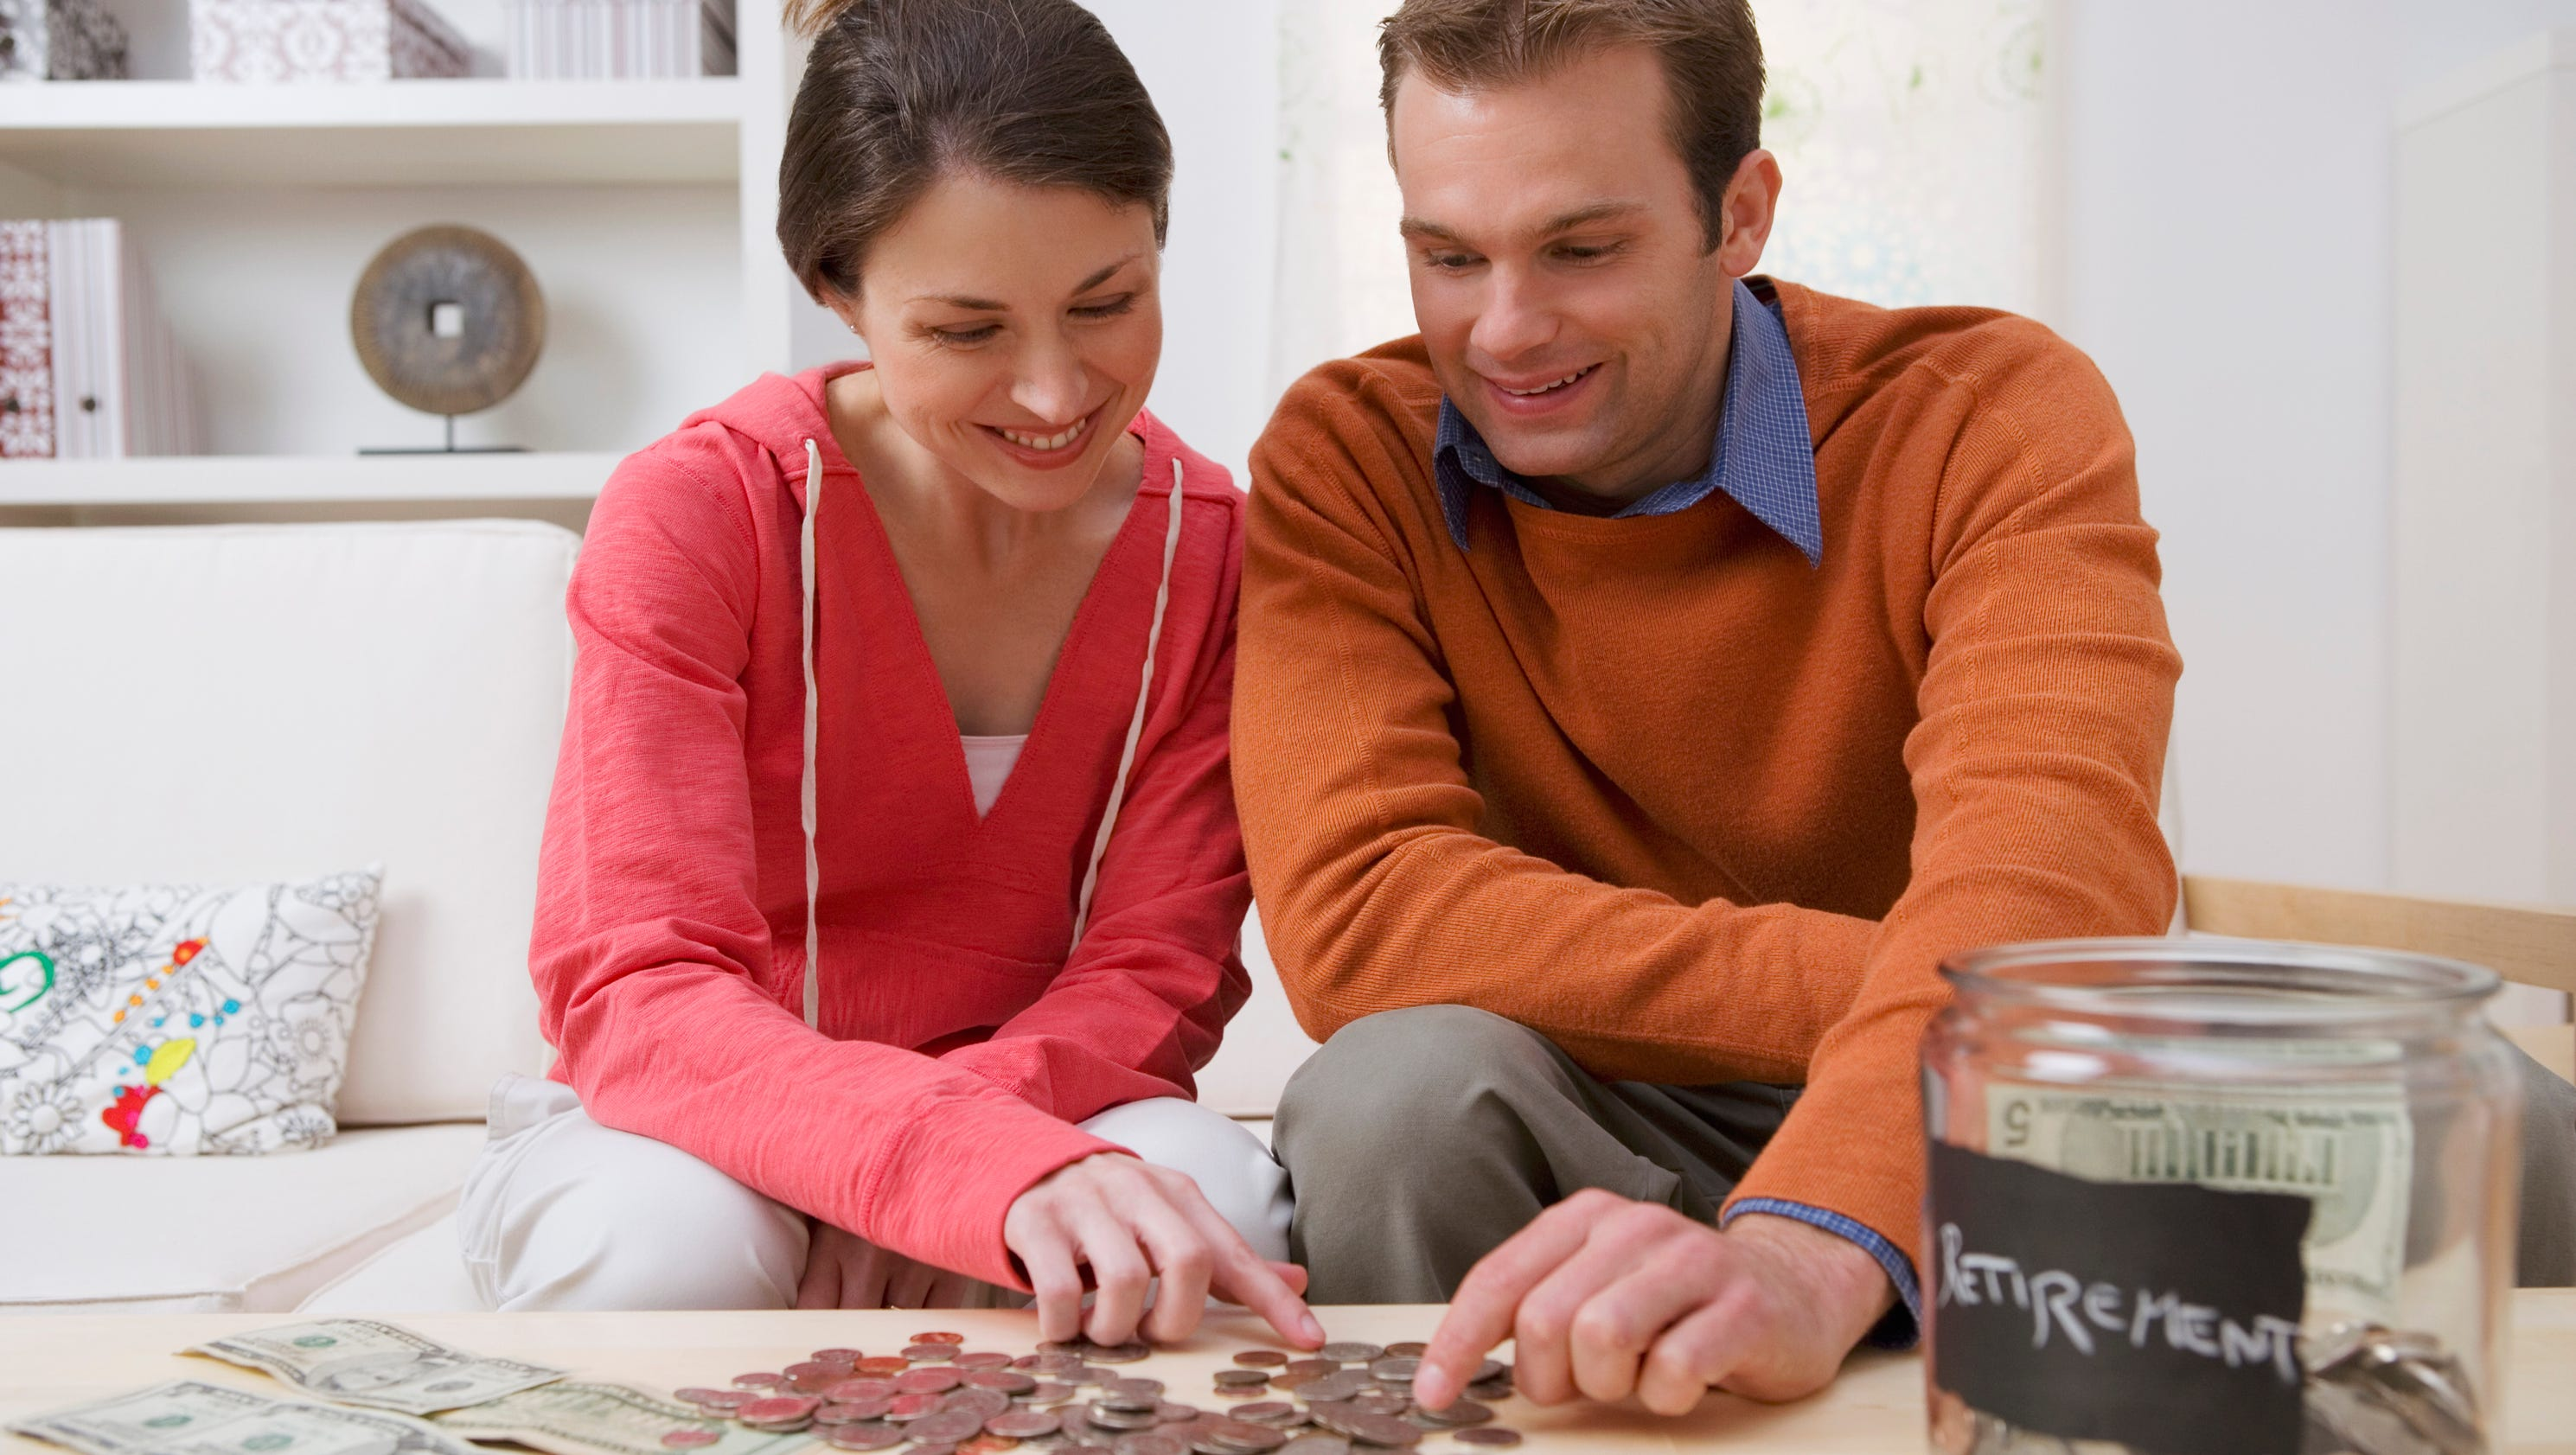 3 hard retirement truths facing Baby Boomers